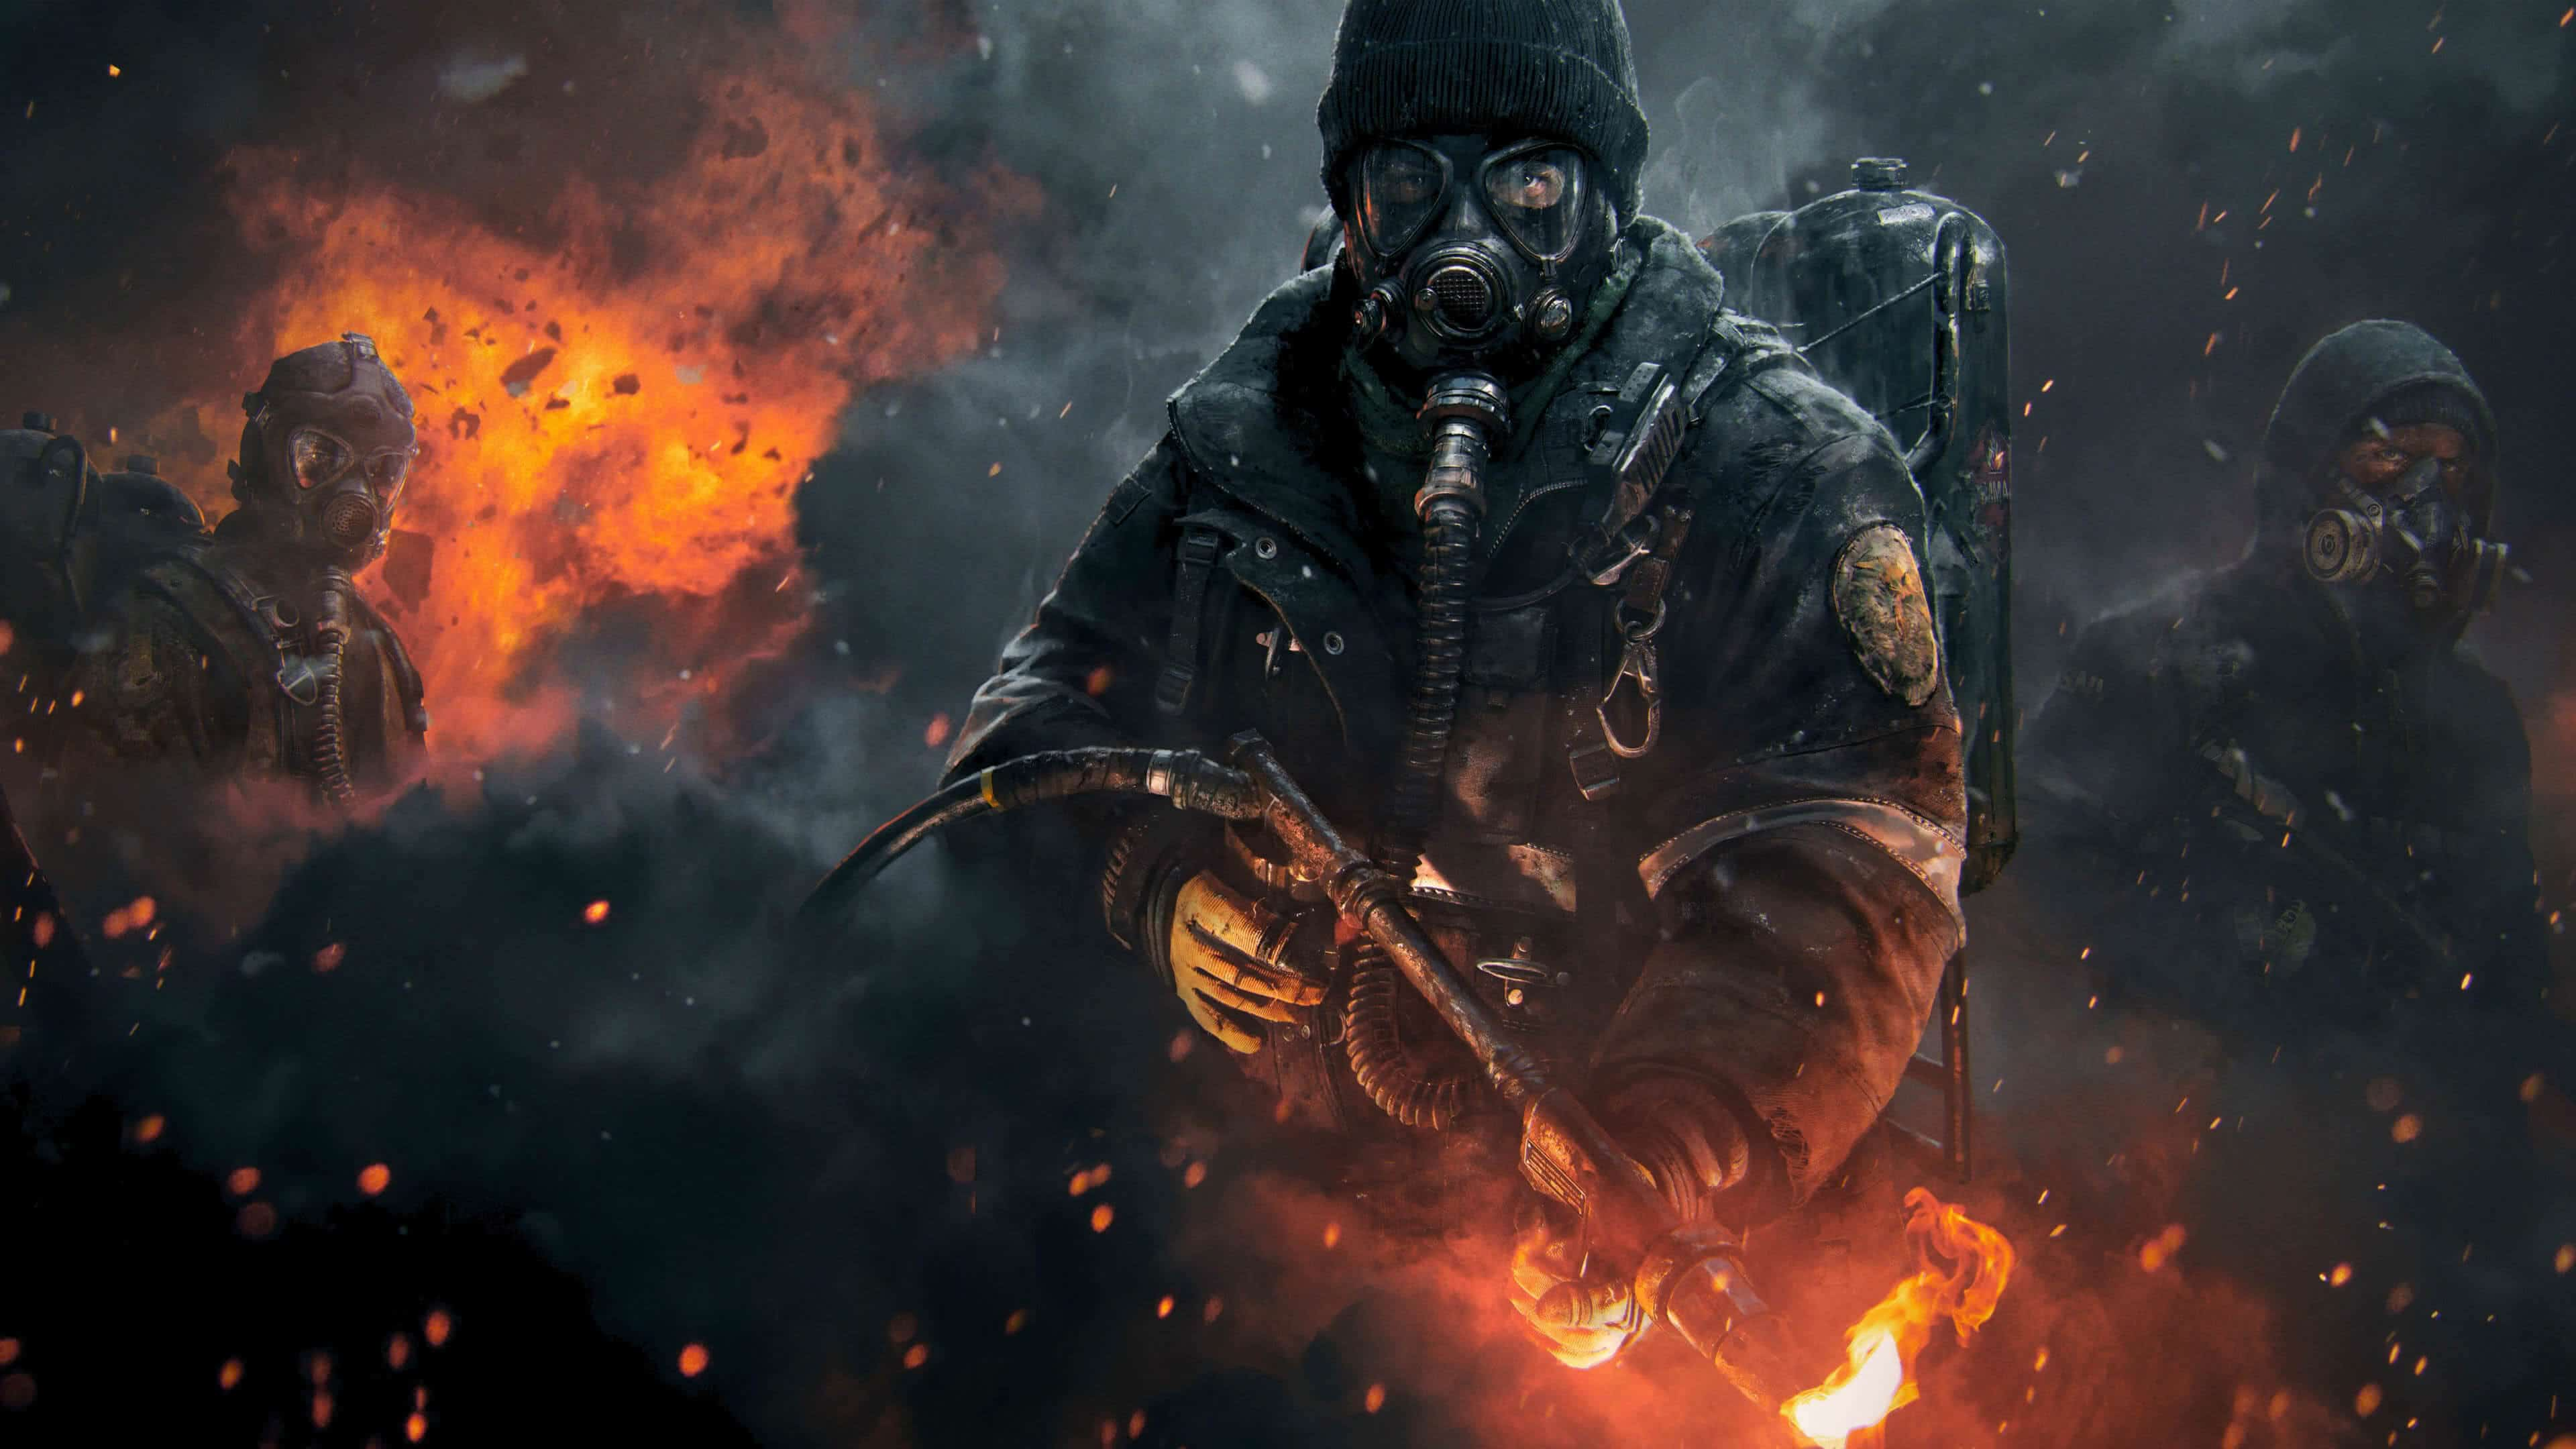 tom clancys the division flame thrower uhd 4k wallpaper